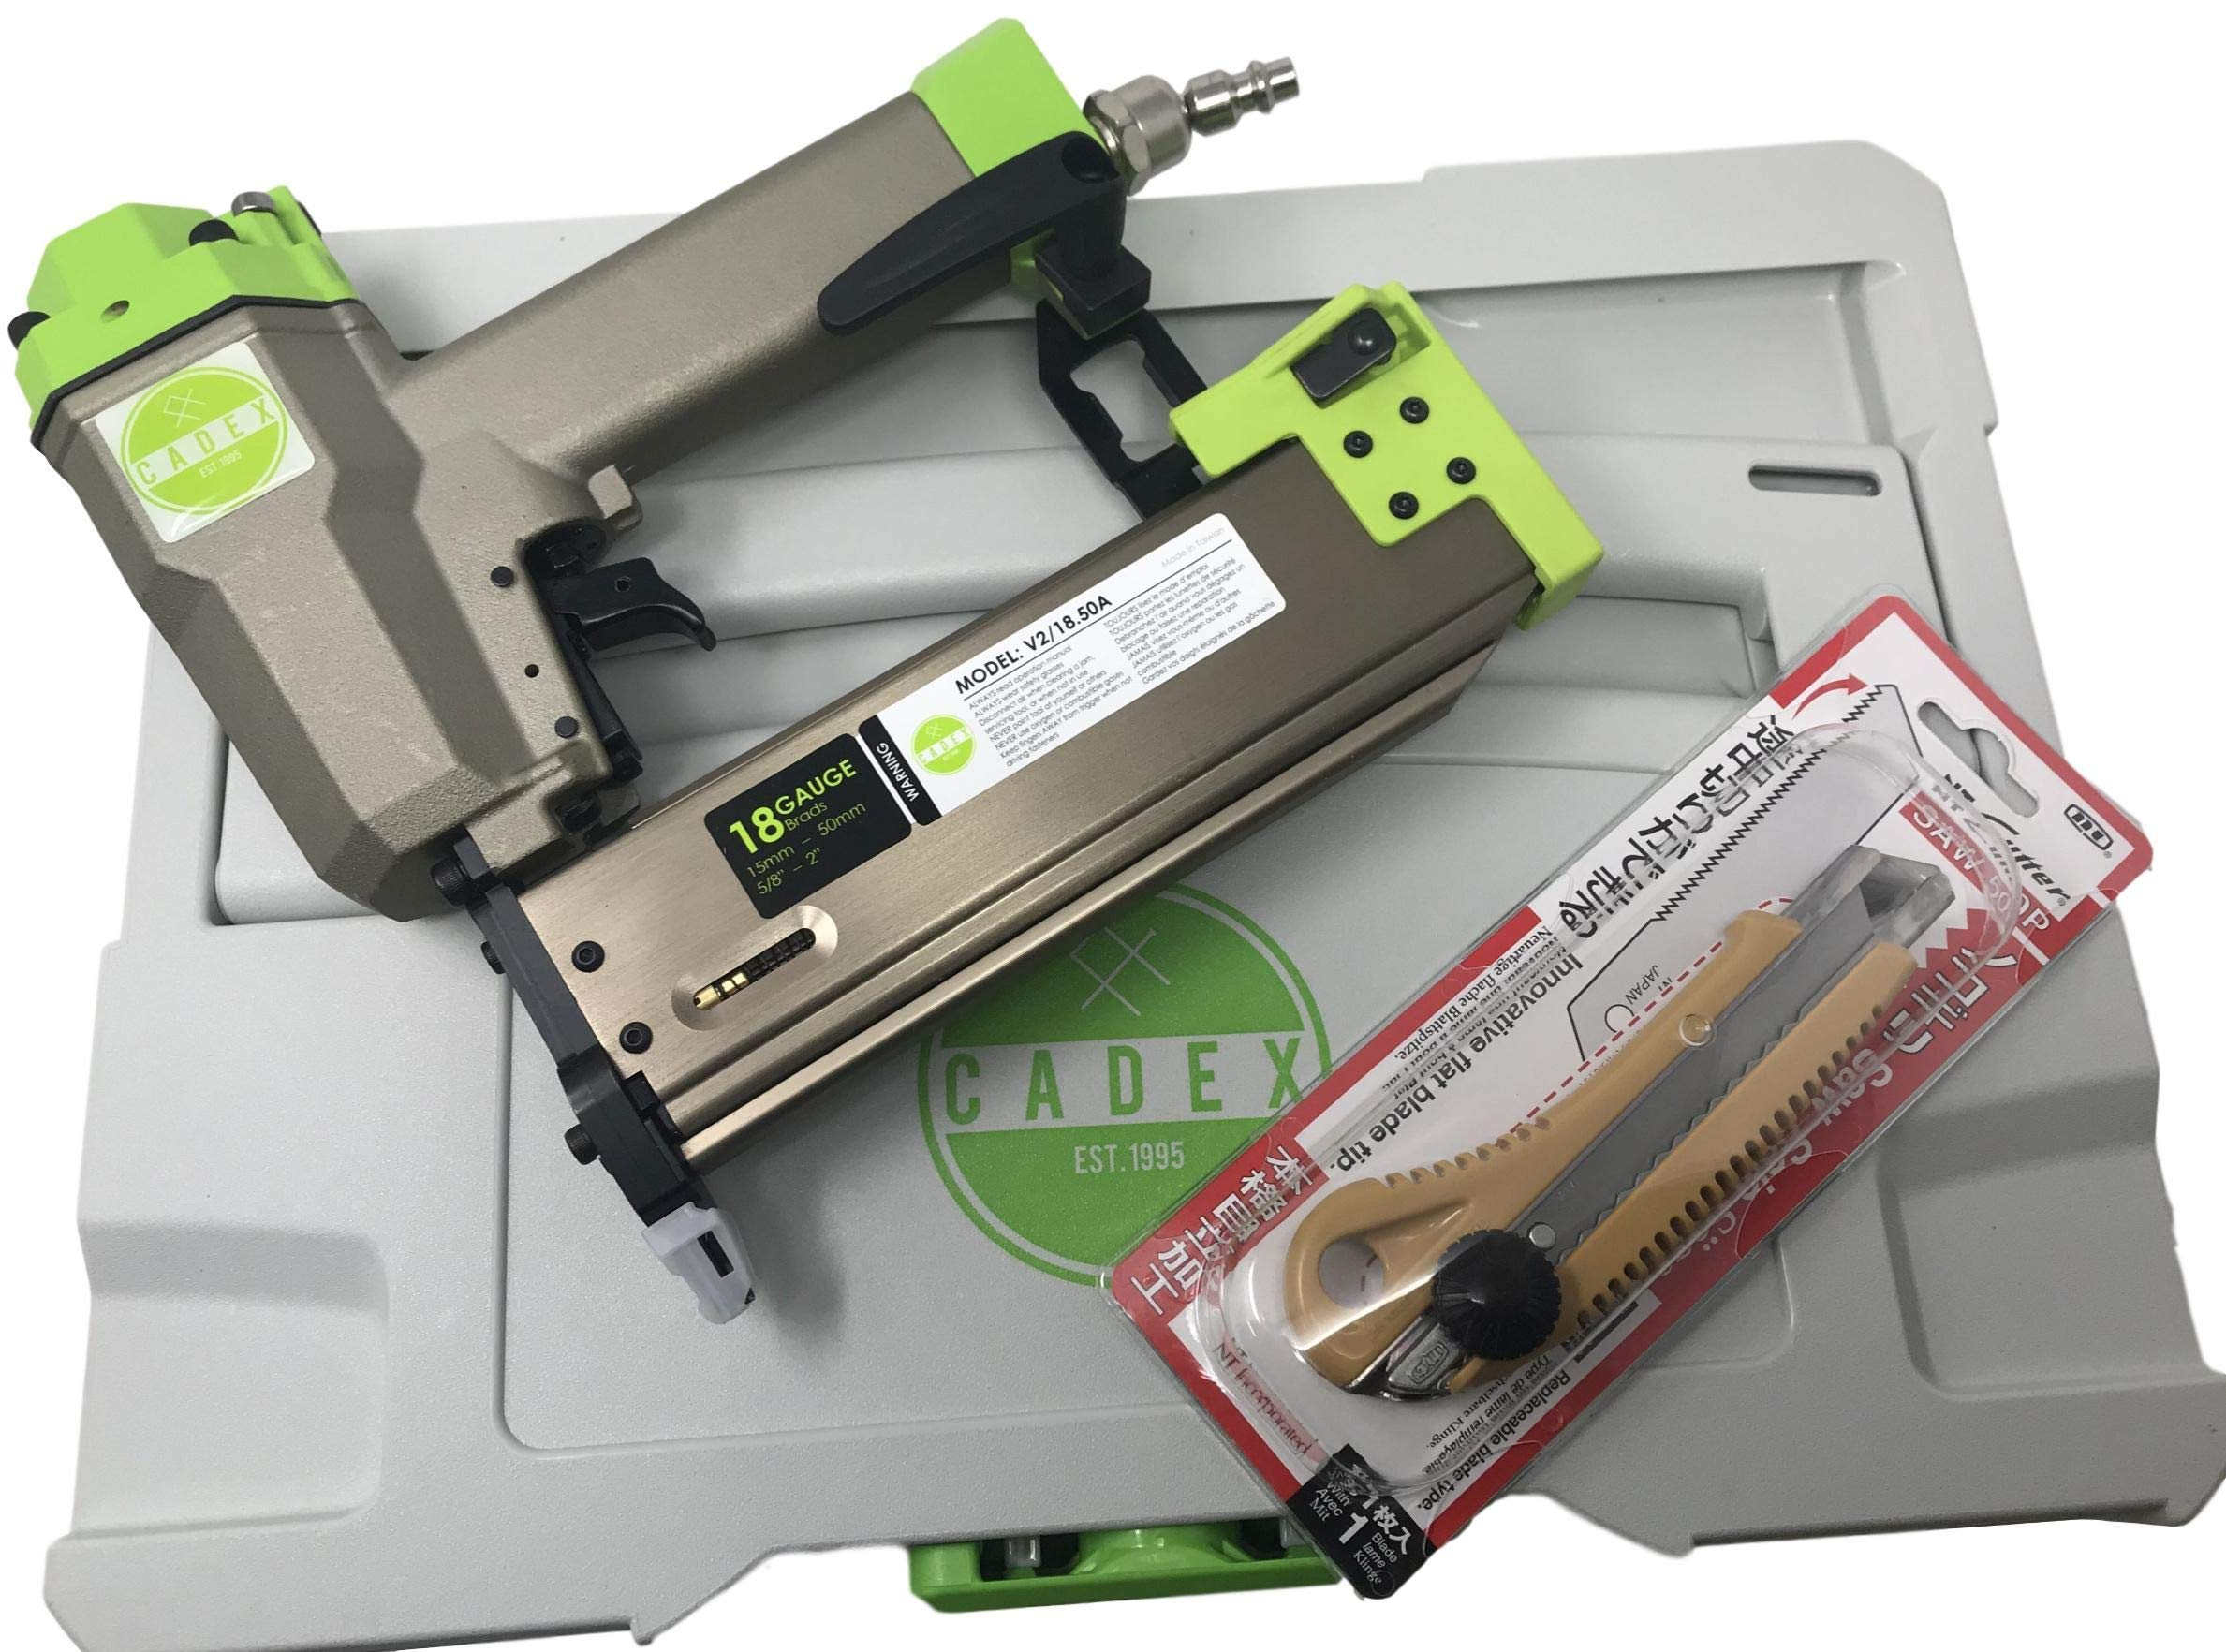 Cadex V2/18.50A 1/2″ - 2″ 18 Gauge Brad Nailer Kit With Reverse Contact Safety, And With Systainer Case & NT Cutter SAW-50P Retractable Saw